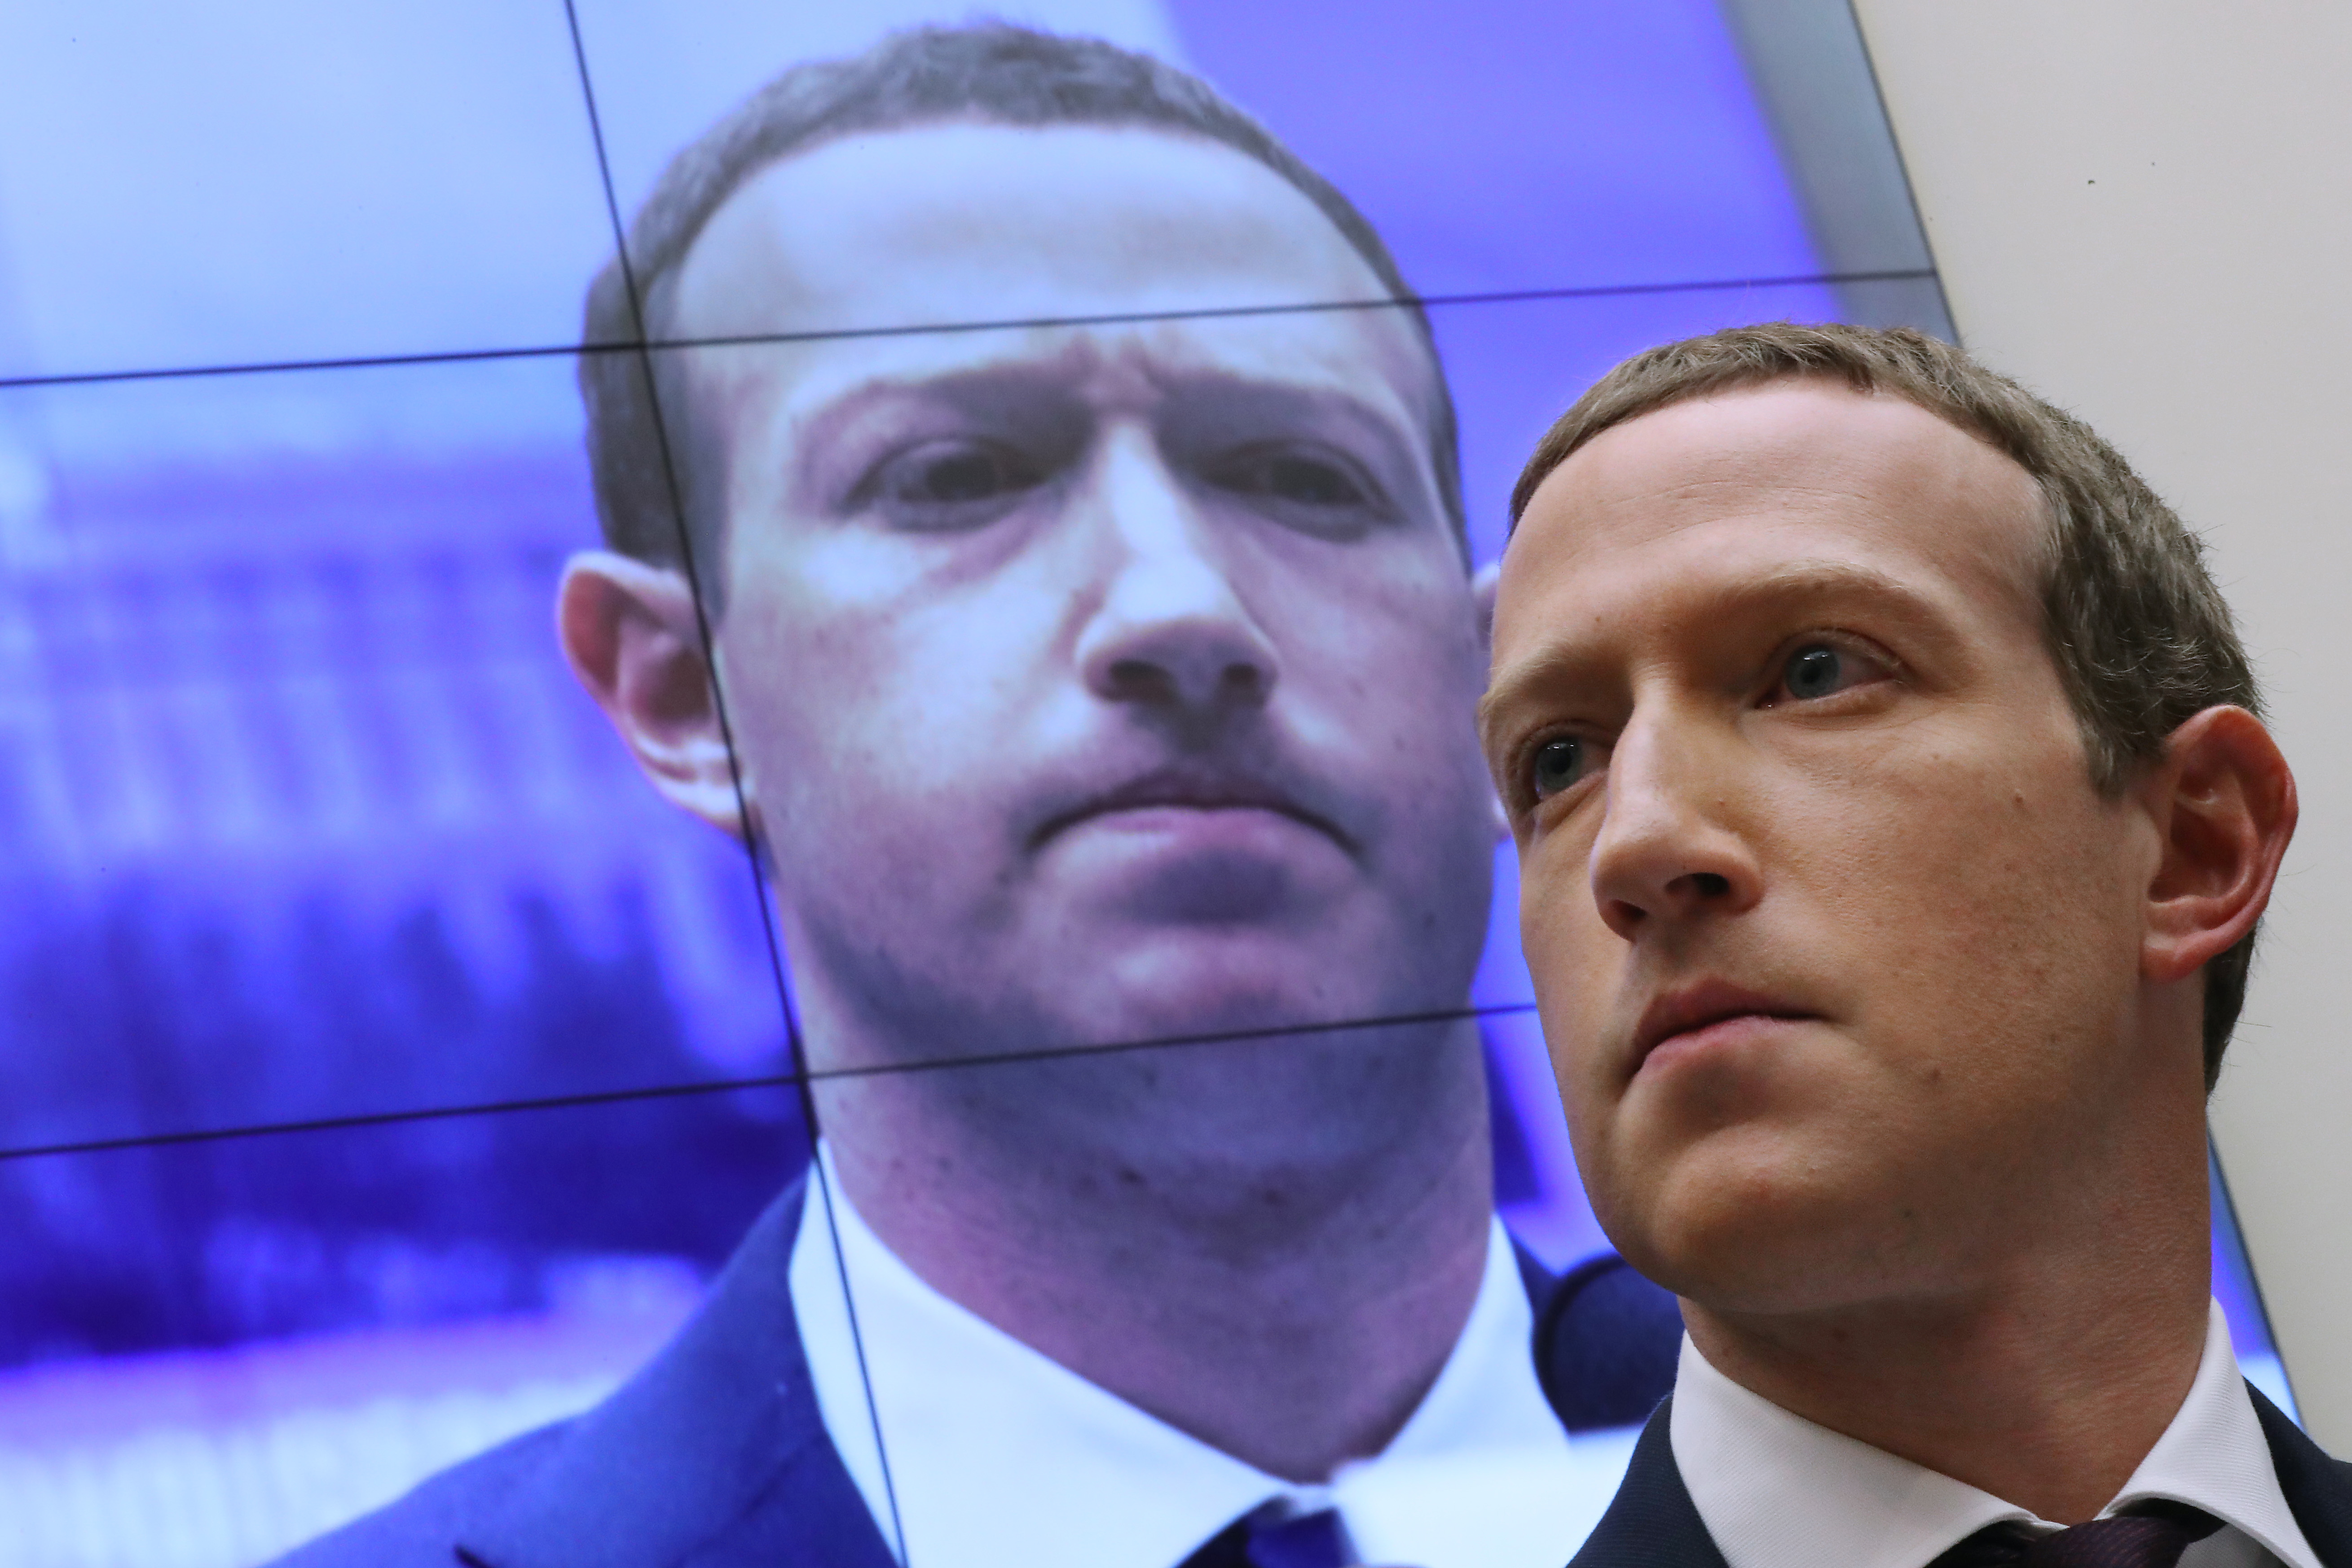 Rupert Murdoch wanted Mark Zuckerberg to pay him for news stories — and now Facebook is going to do just that